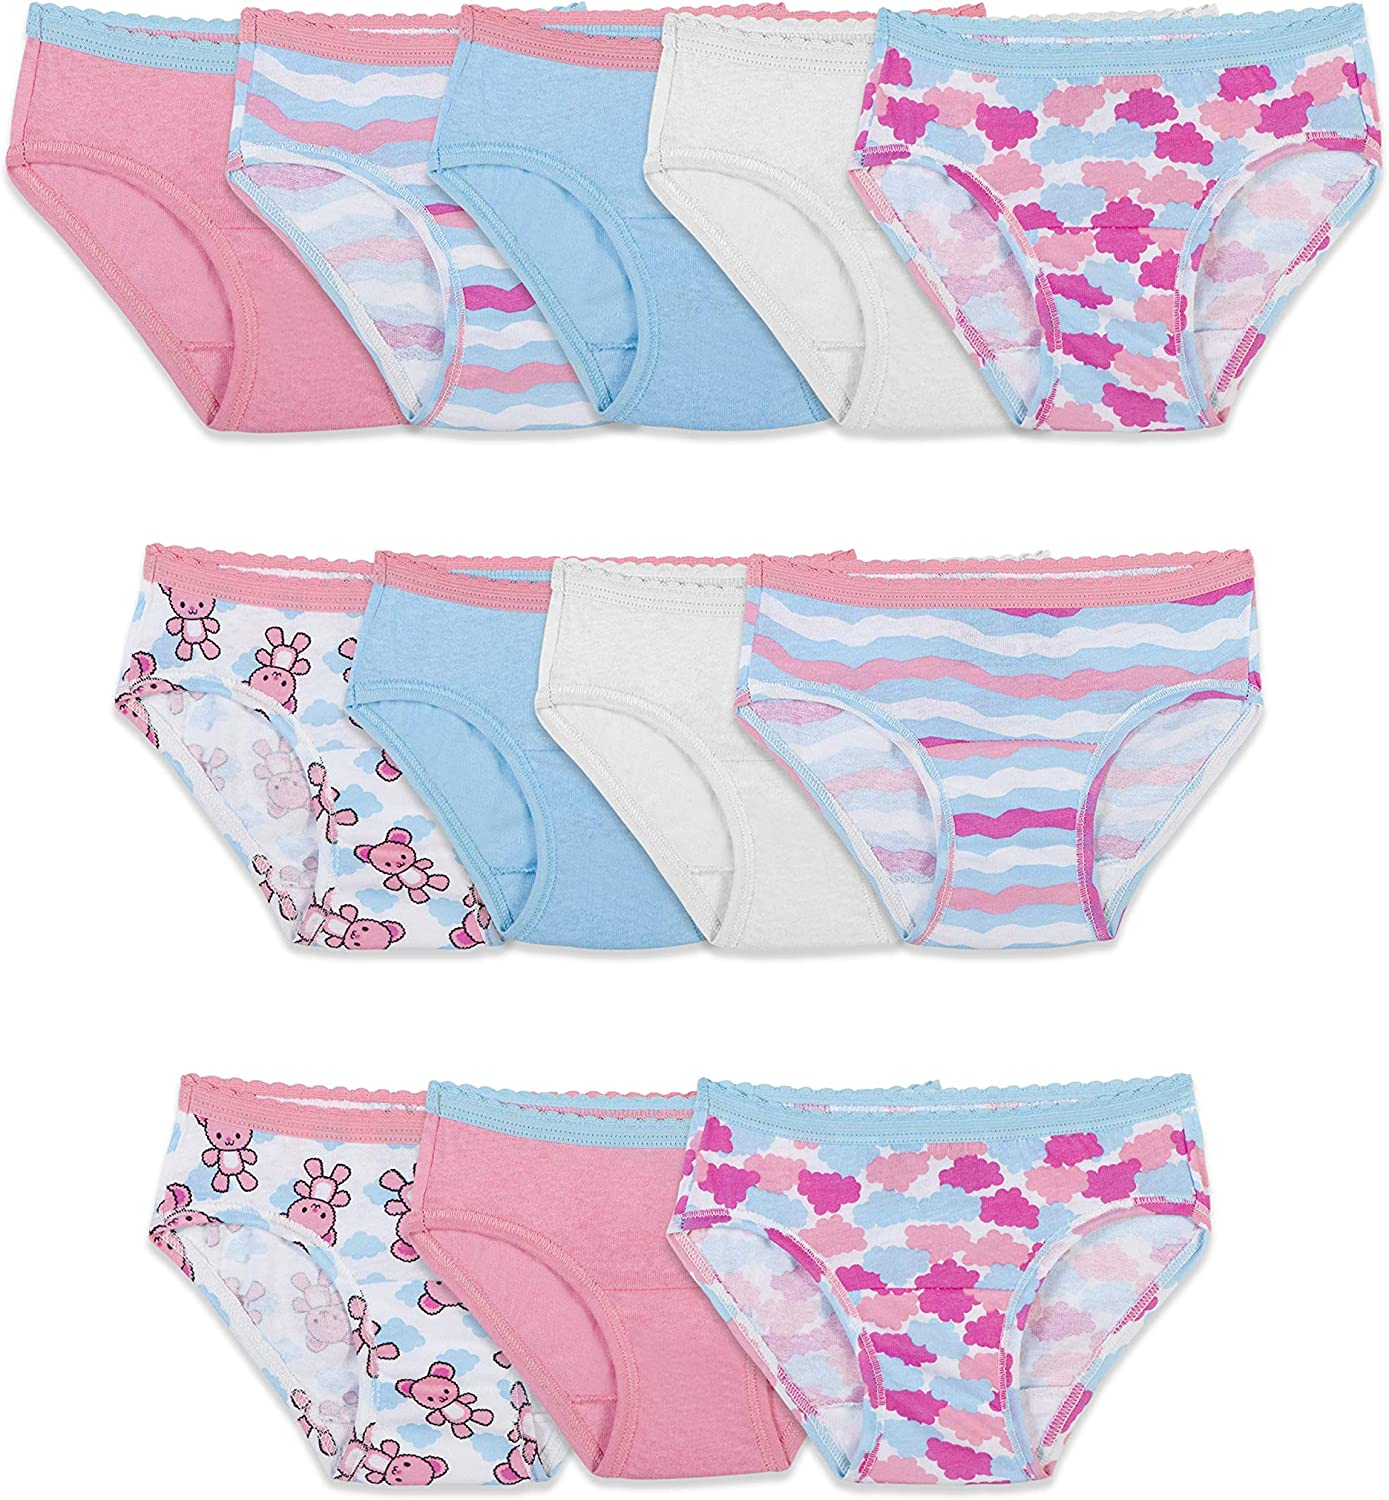 Pack of 12 Fruit of the Loom Toddler Girls Brief